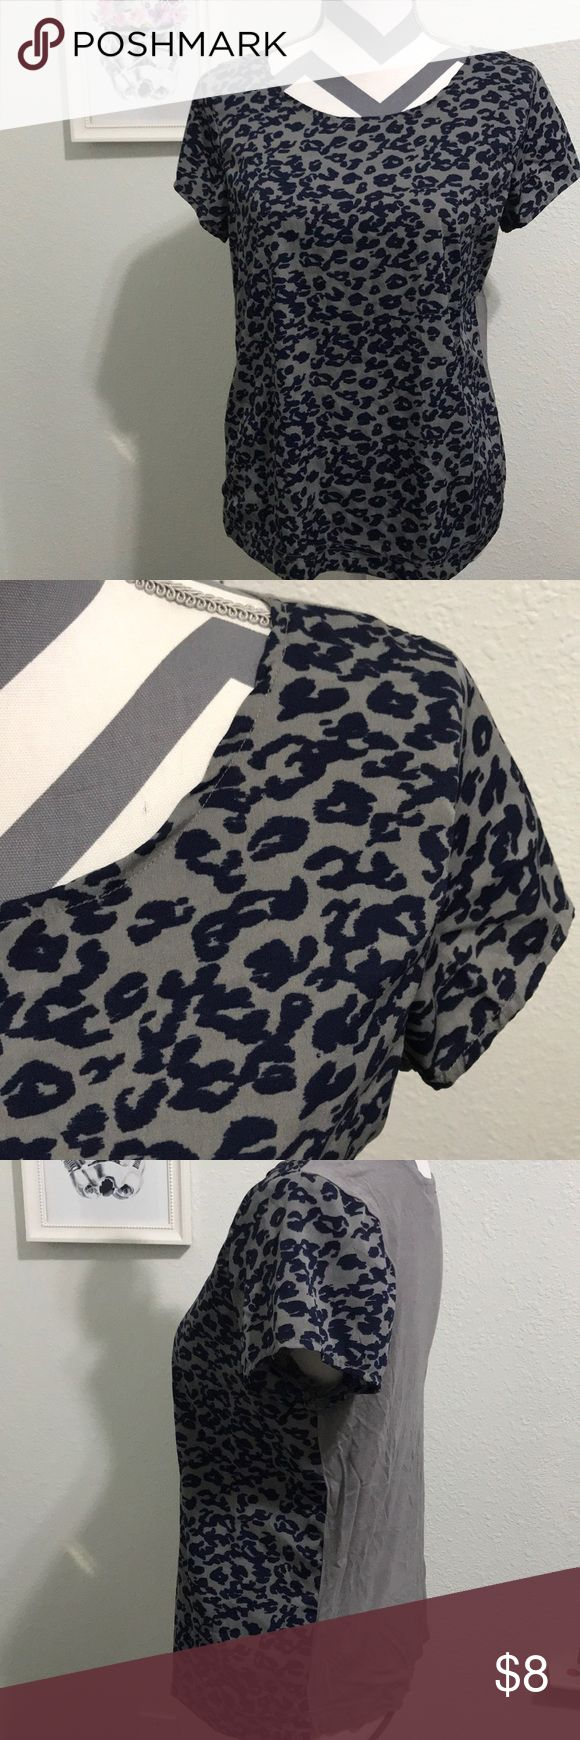 Leopard print top Super cute! Gap top! Gray & navy print leopard print markings. No stains, rips or holes. 100% Polyester GAP Tops Tees - Short Sleeve